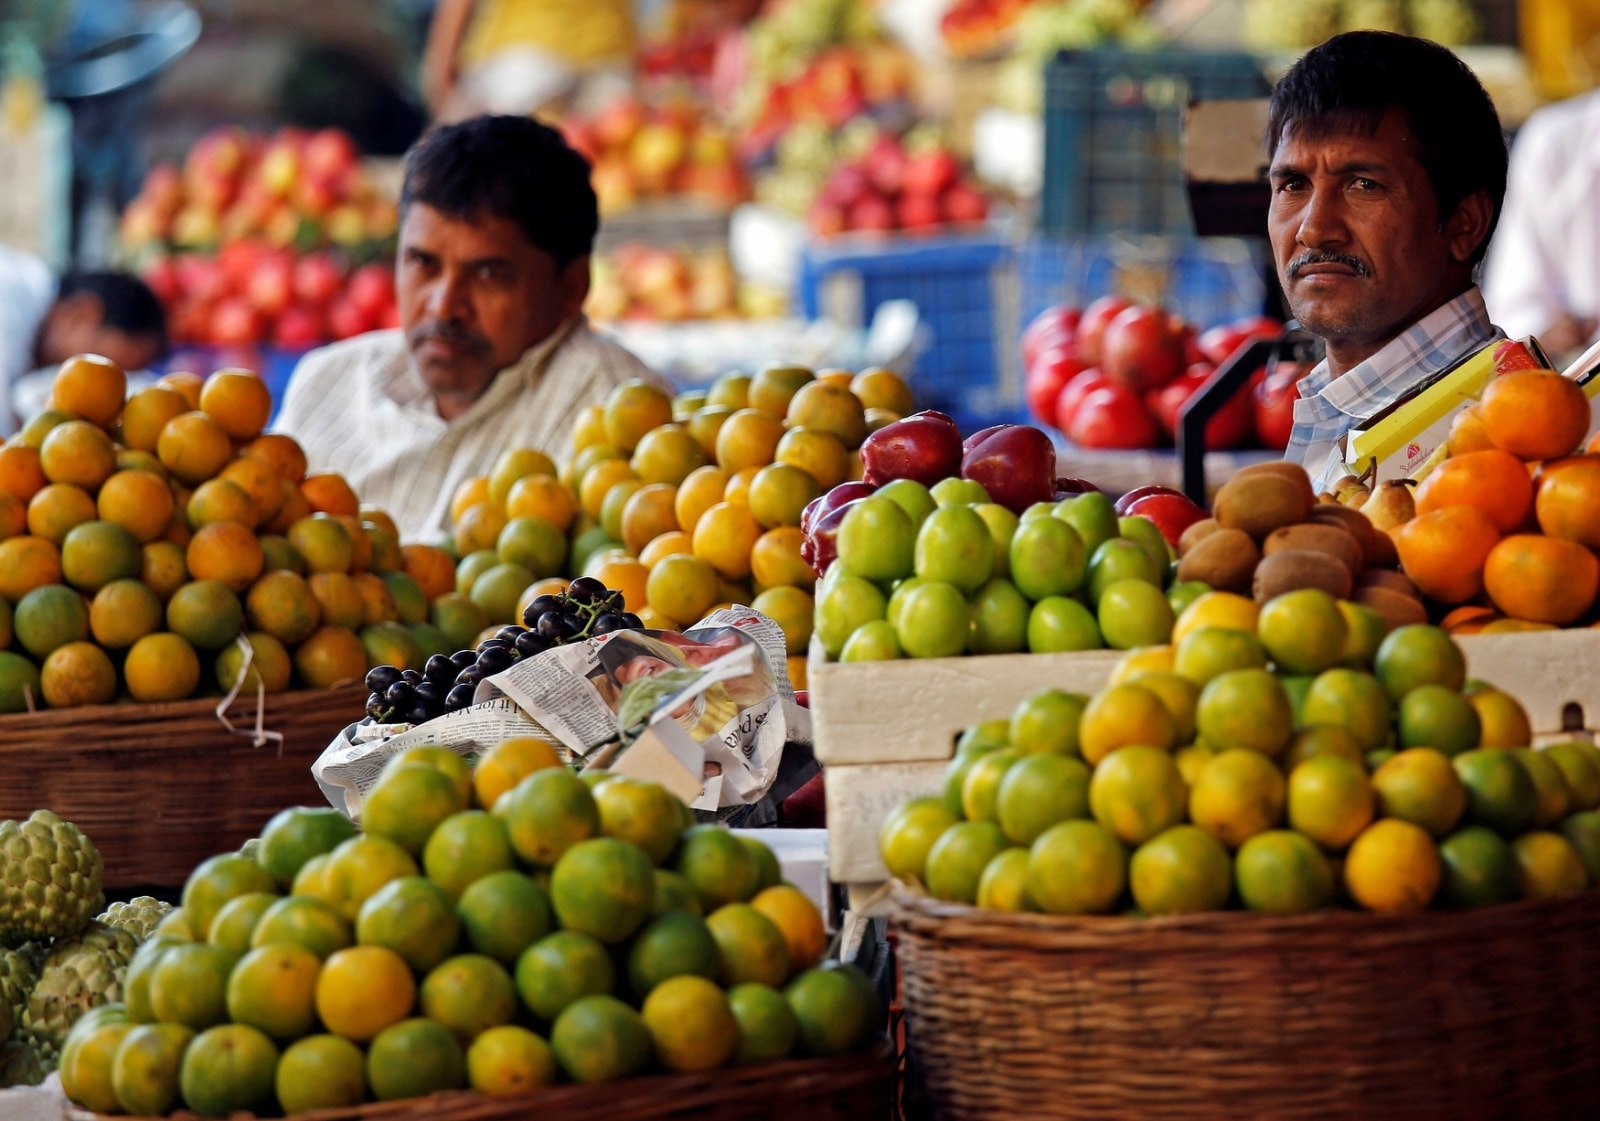 10. Inflation: Food inflation in the country is likely to go up to 2 percent in the fiscal year 2019-20 from the 0.7 percent estimated for FY19, a report said on Monday. It can be noted that the low food prices have been one of the prime factors which have aided the RBI to be more accommodatory in its rate-setting recently. In the report, foreign brokerage Goldman Sachs attributed the low food prices in the last few months to the prices of cereals and vegetables which have been low for some time. (Image: Reuters)